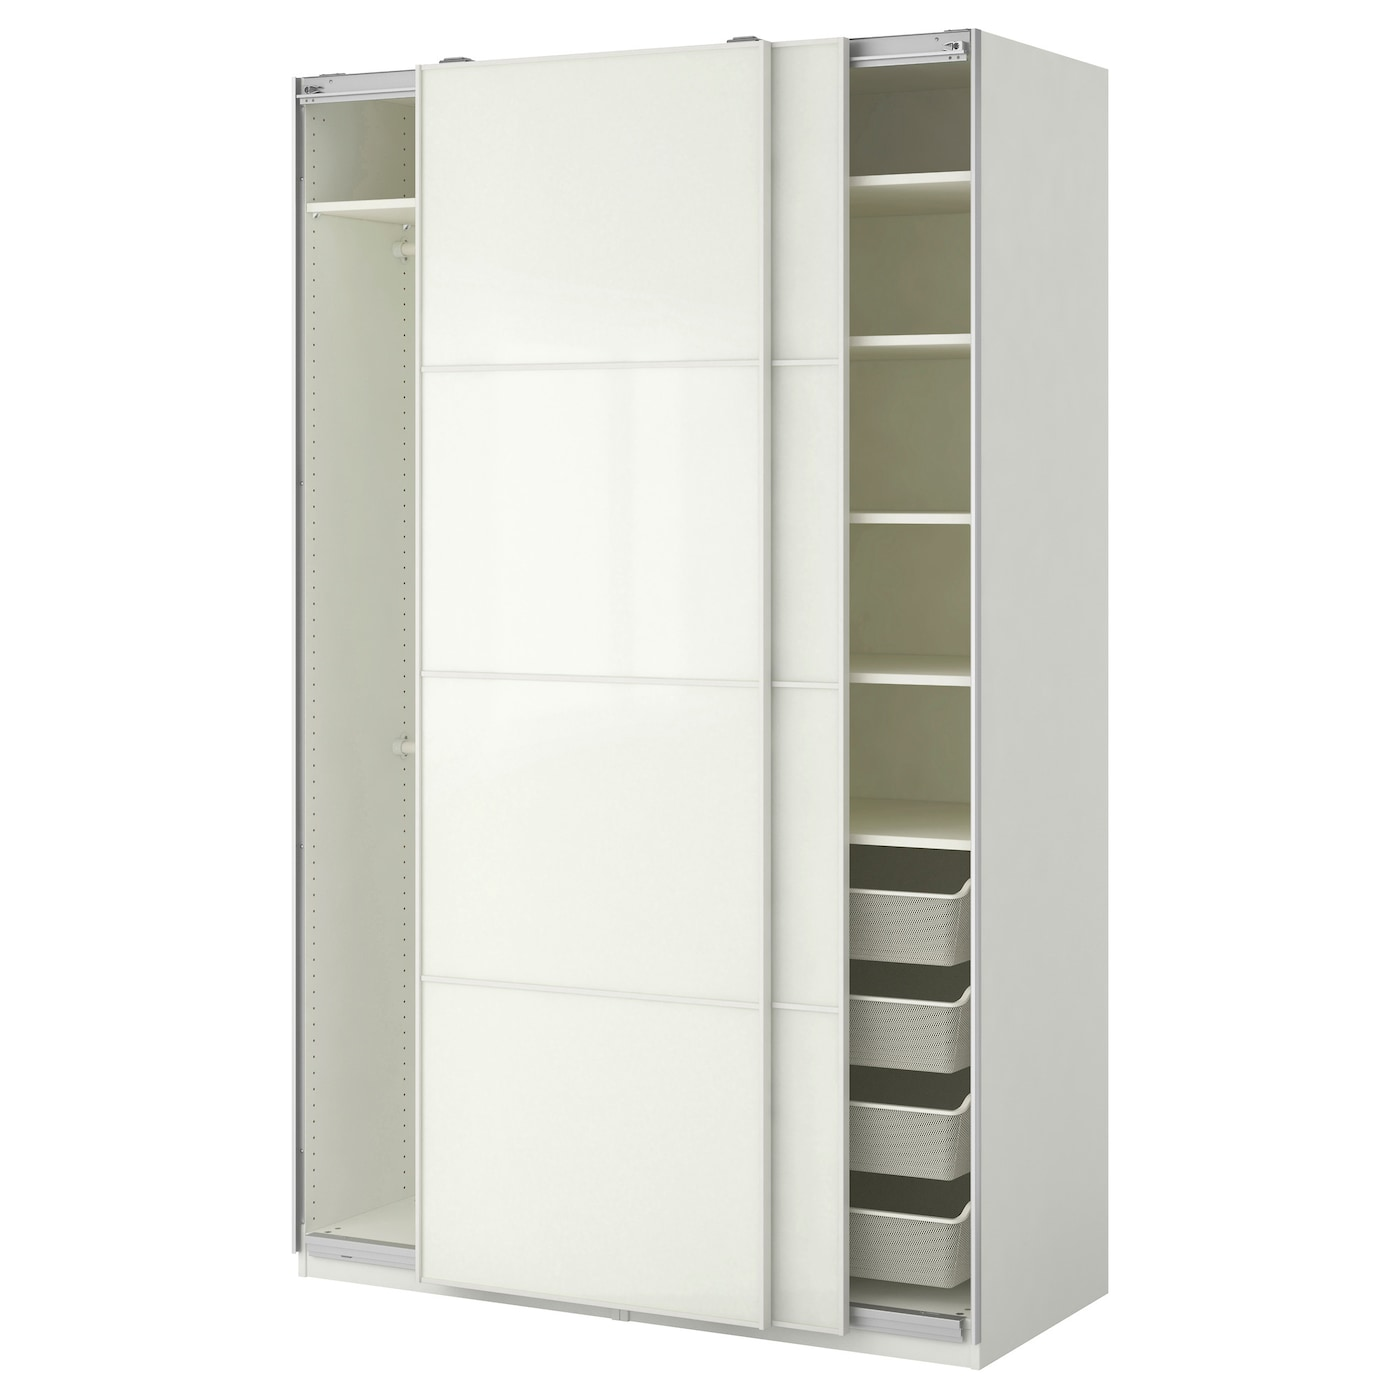 pax wardrobe white f rvik white glass 150x66x236 cm ikea. Black Bedroom Furniture Sets. Home Design Ideas